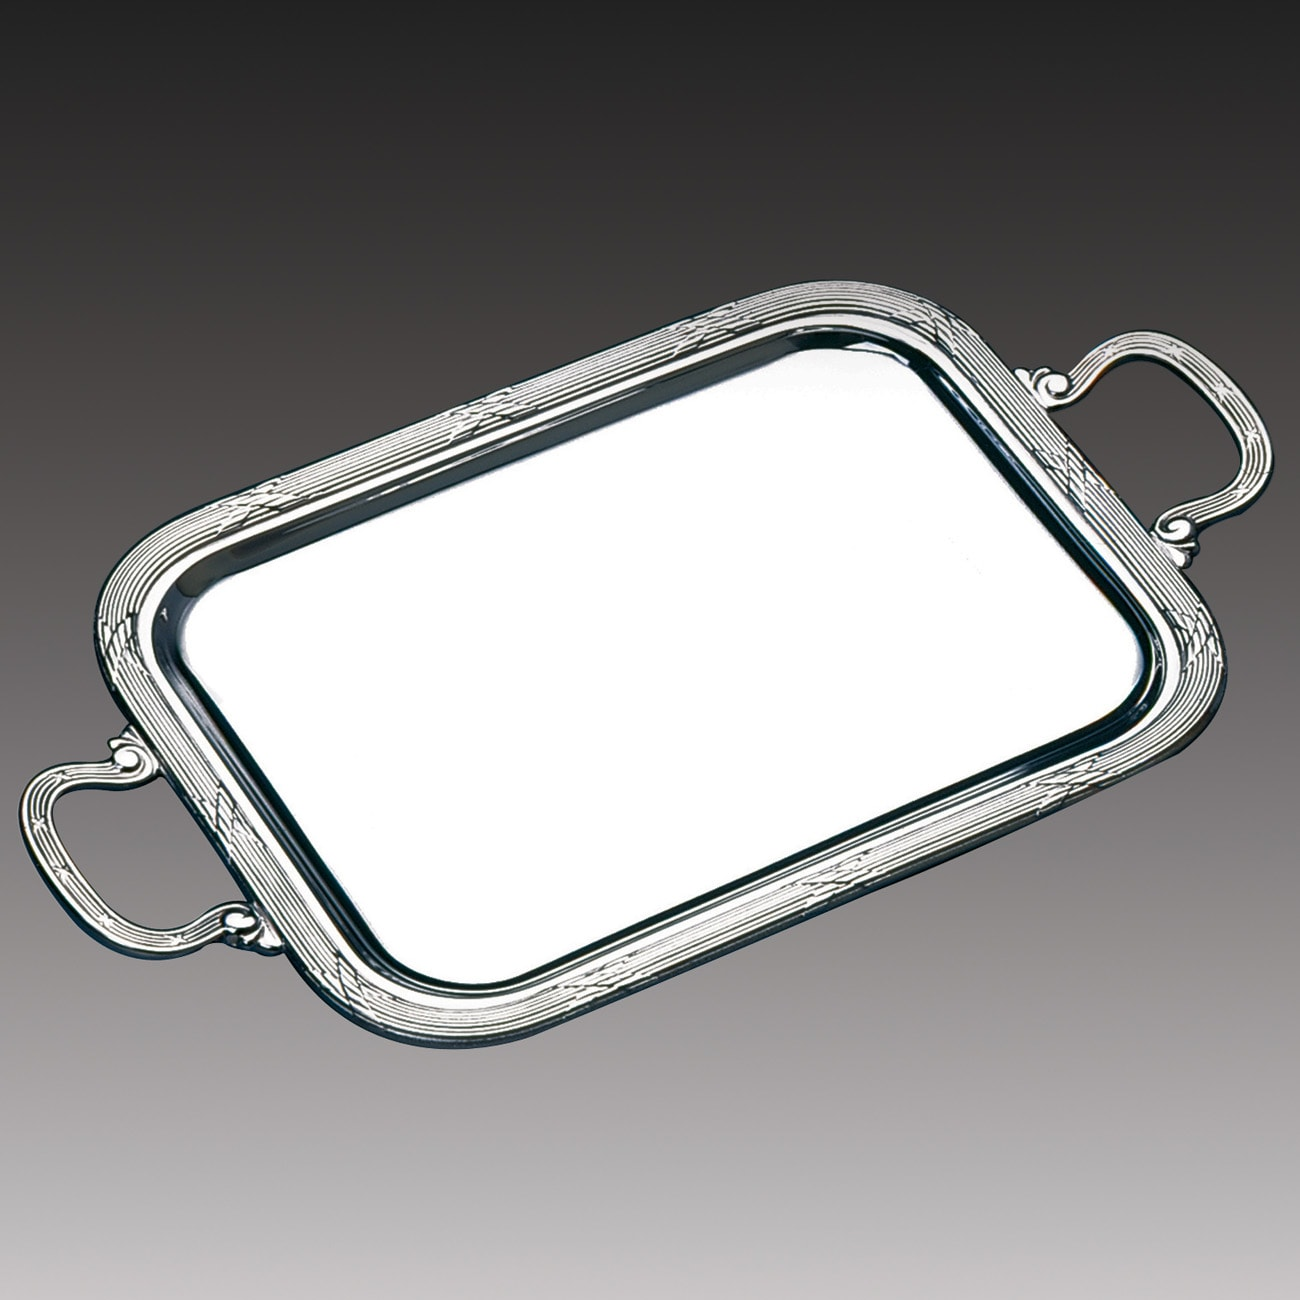 Wolff Croise Silver Stainless Steel Rectangle Serving Tray with Handles